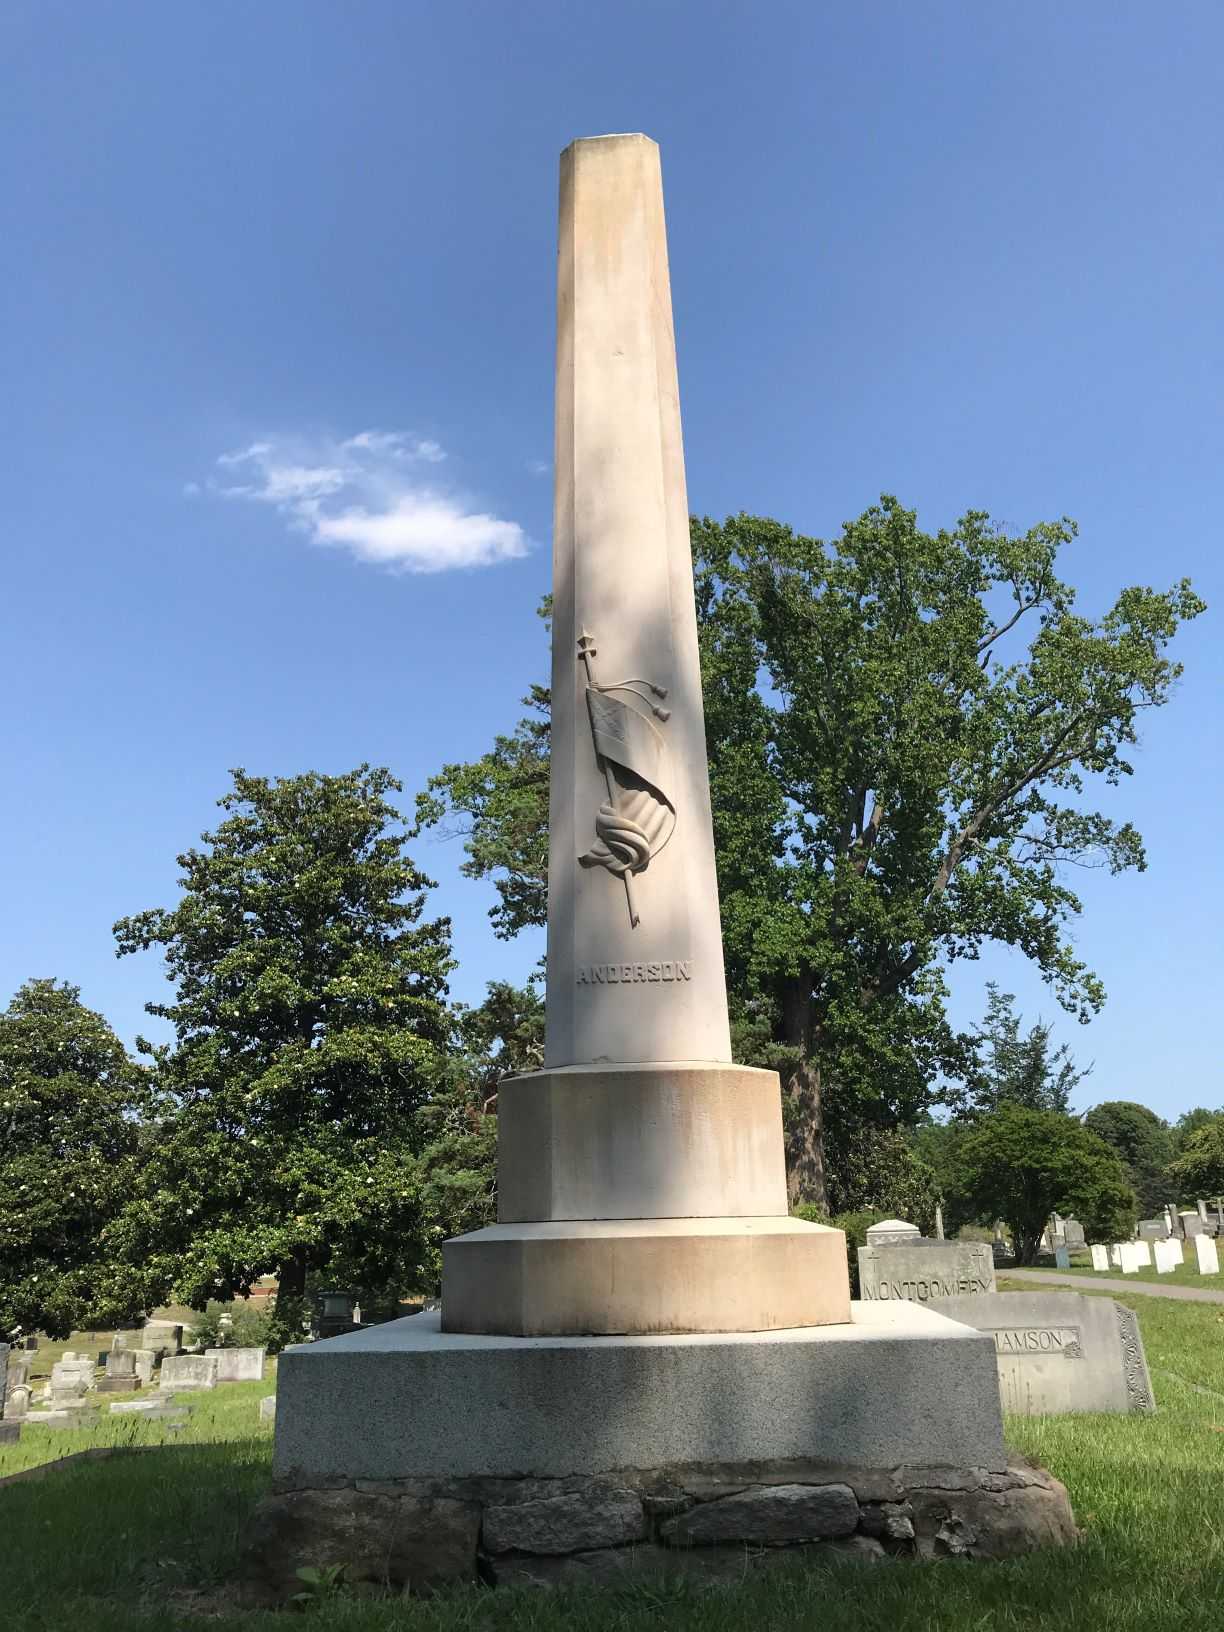 General George Burgwyn Anderson Monument erected in 1868.General Anderson was wounded at the battle of Sharpsburg (Antietem) in Maryland on September 17, 1862. After the battle, Anderson was carried to Richmond and then to Raleigh where he had a foot ampu